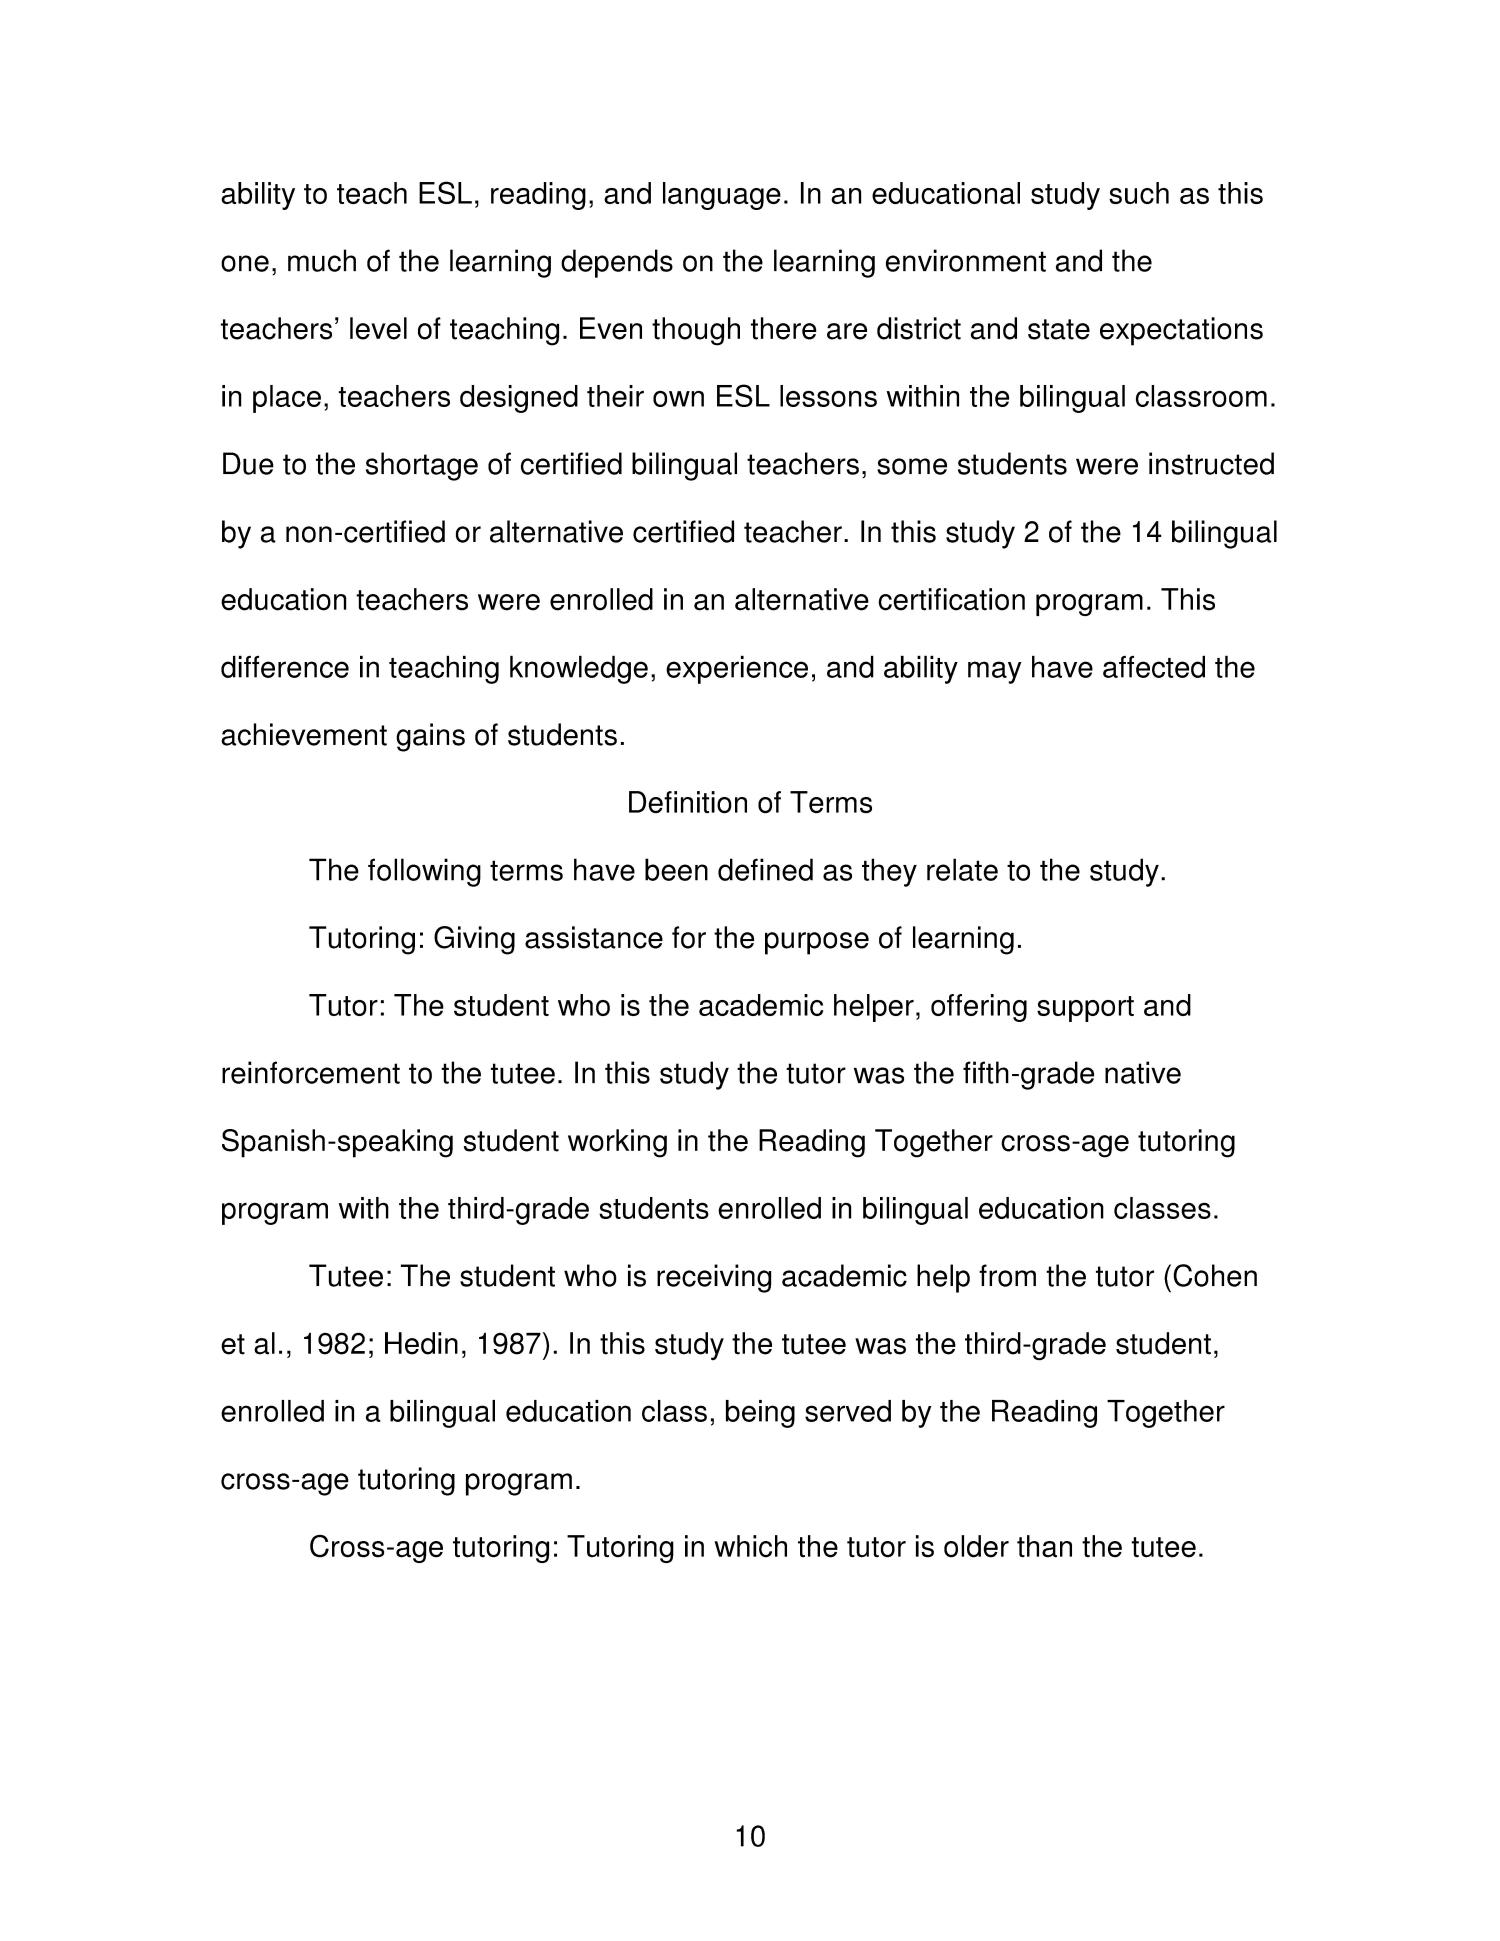 The Reading Together Cross Age Tutoring Program And Its Effects On